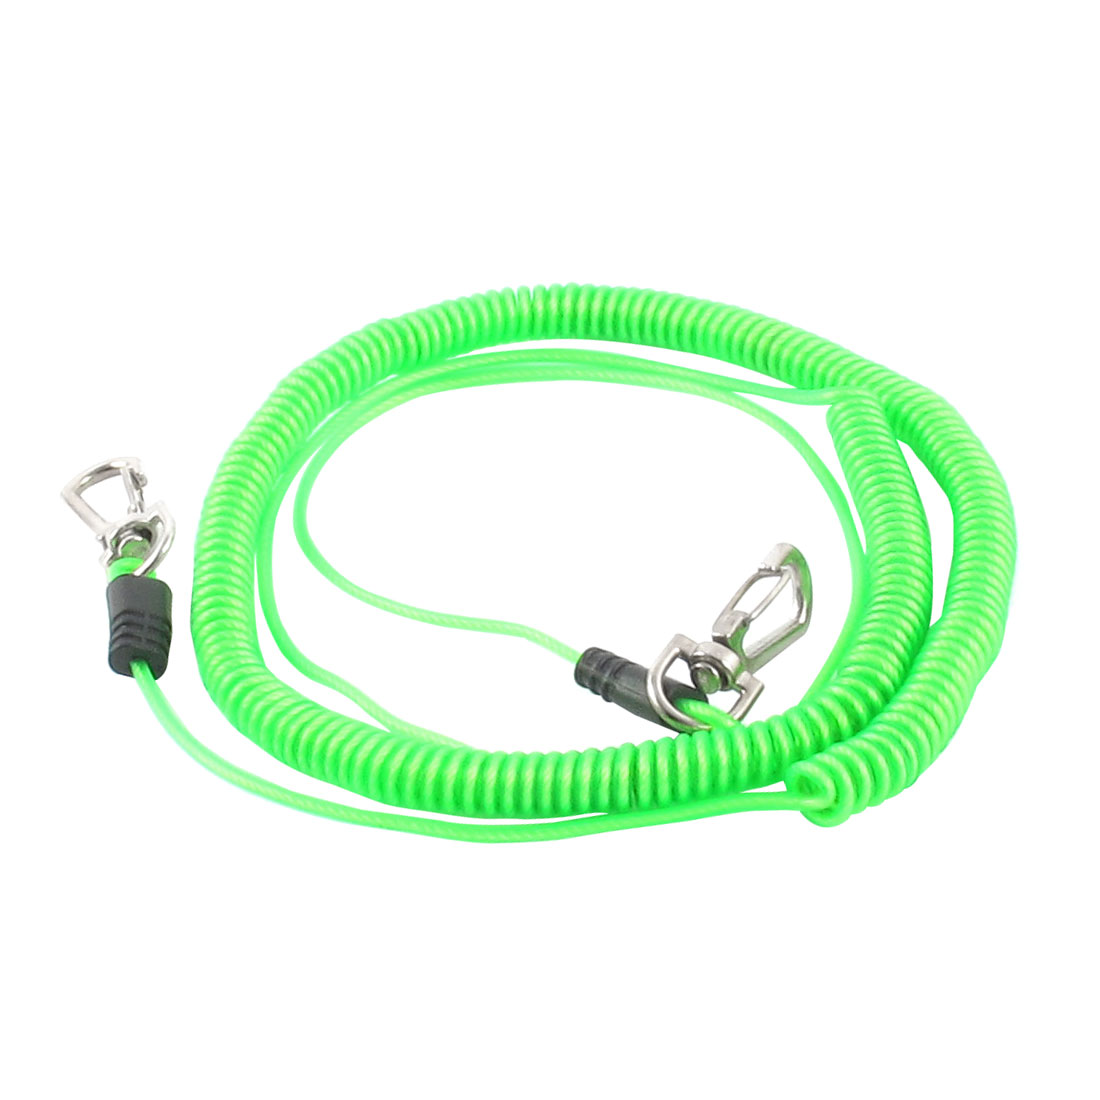 Fishing Rod Retractable Lobster Clasp Stretchy Coiled Lanyard Rope Cord Green 5M 16Ft